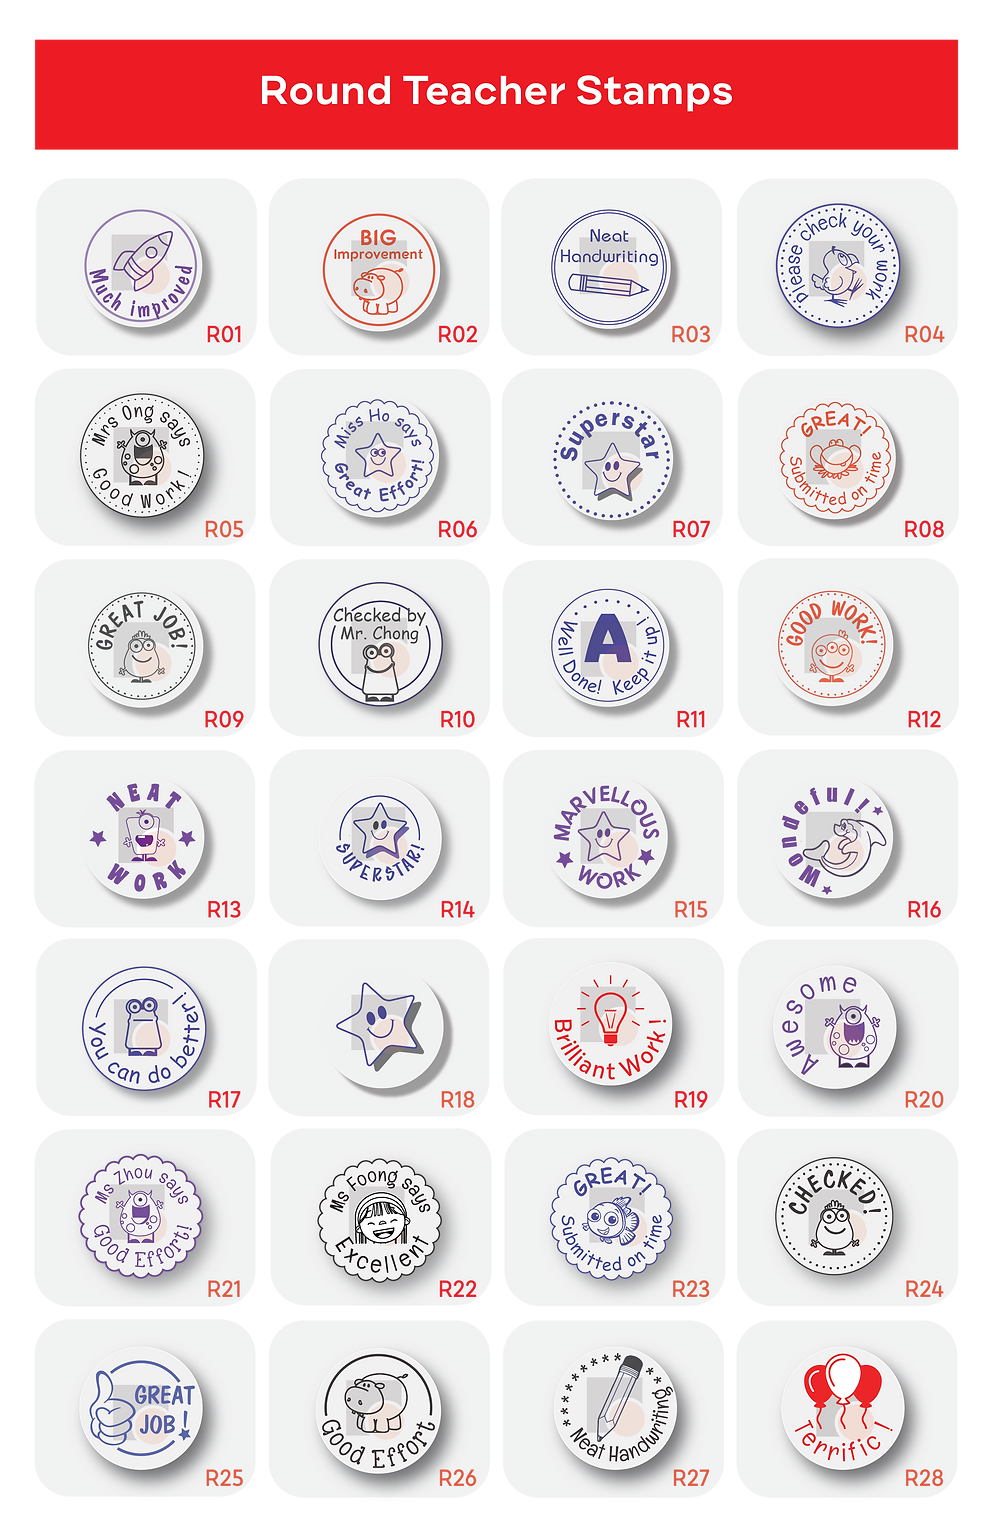 Stamps & Chops | Round Teacher Stamps